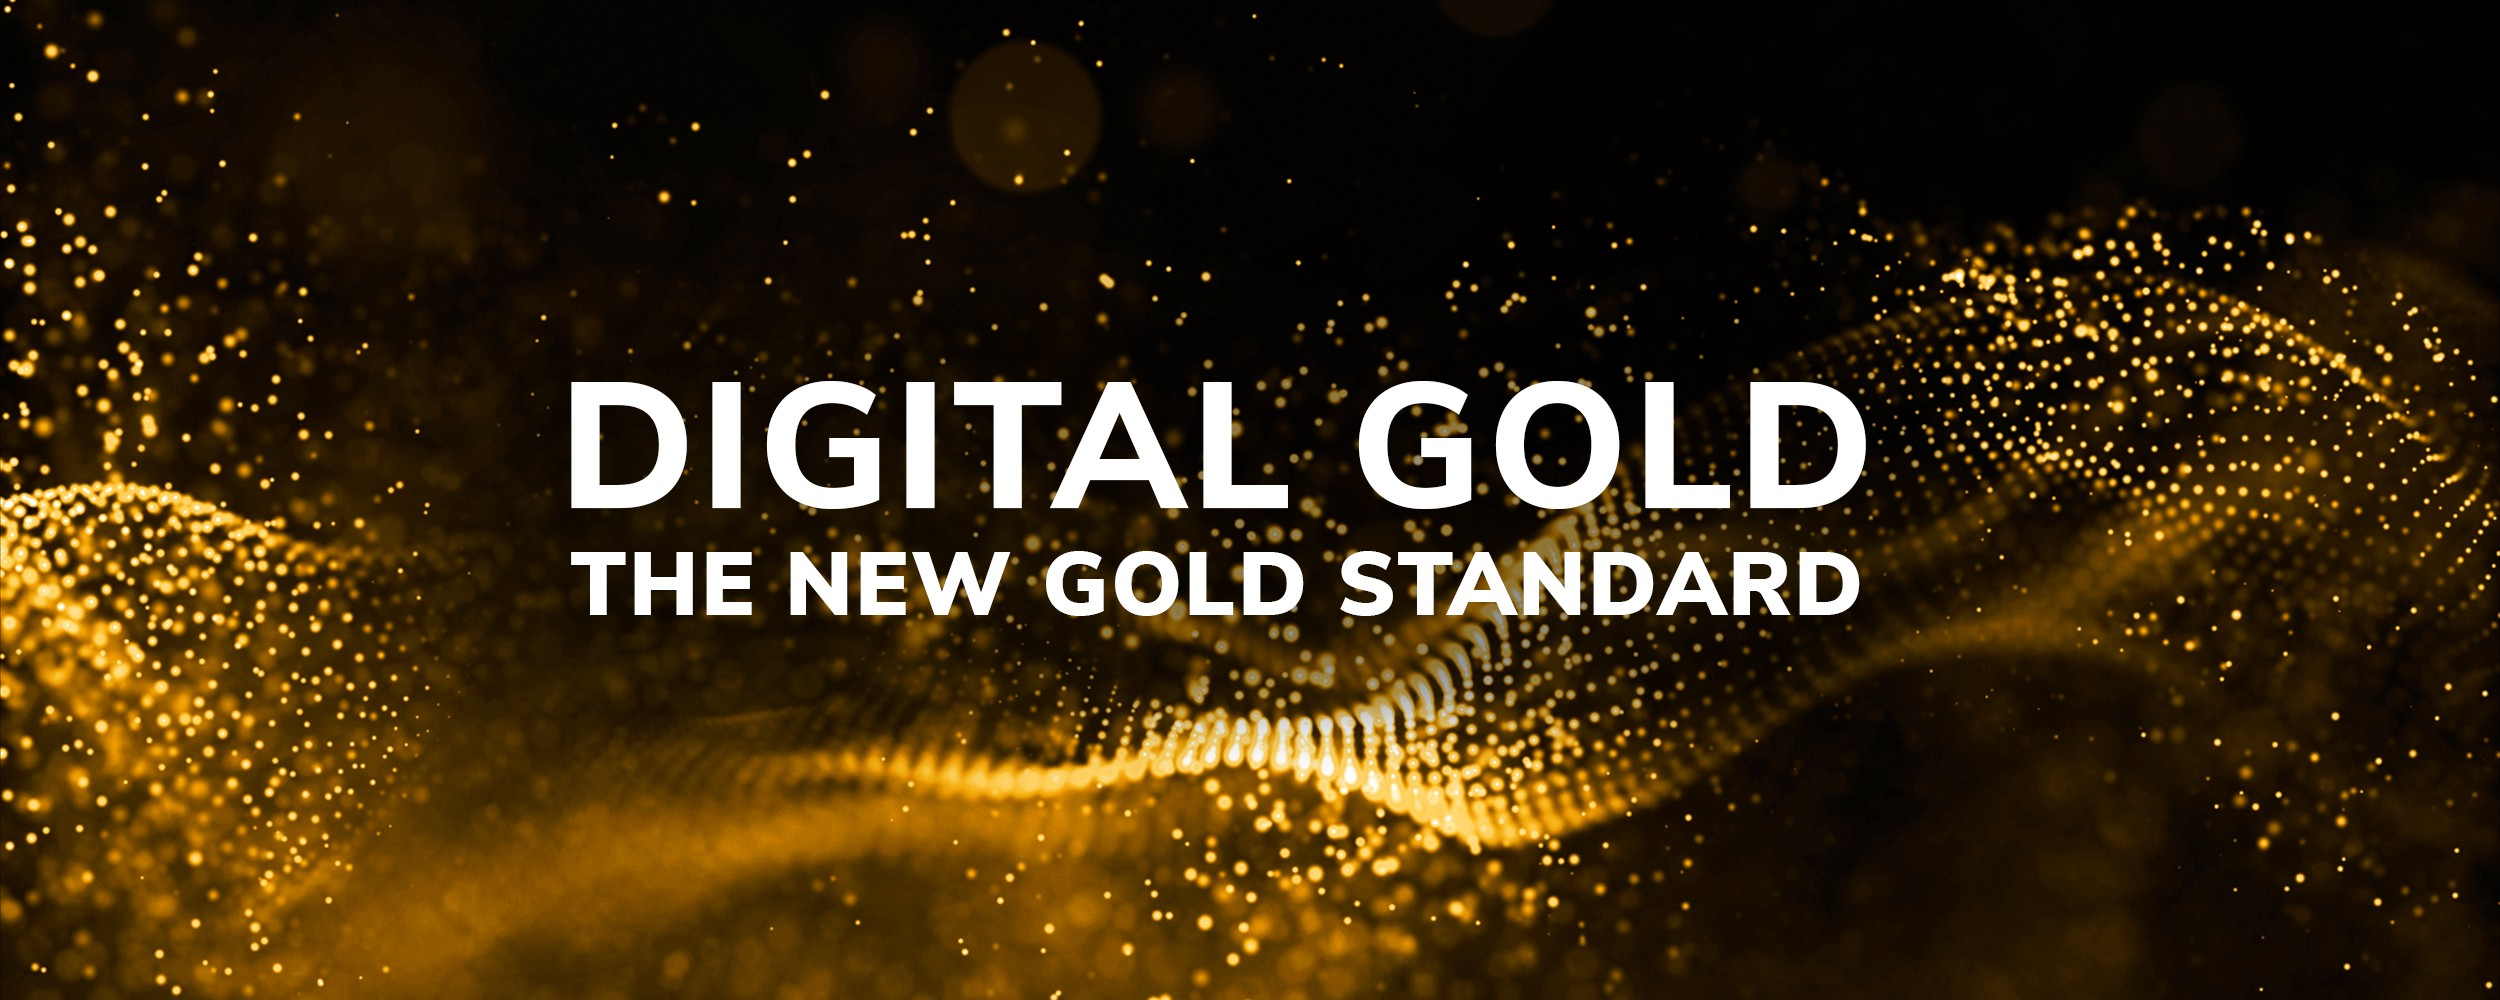 Digital-gold-vrs-Physical-Gold